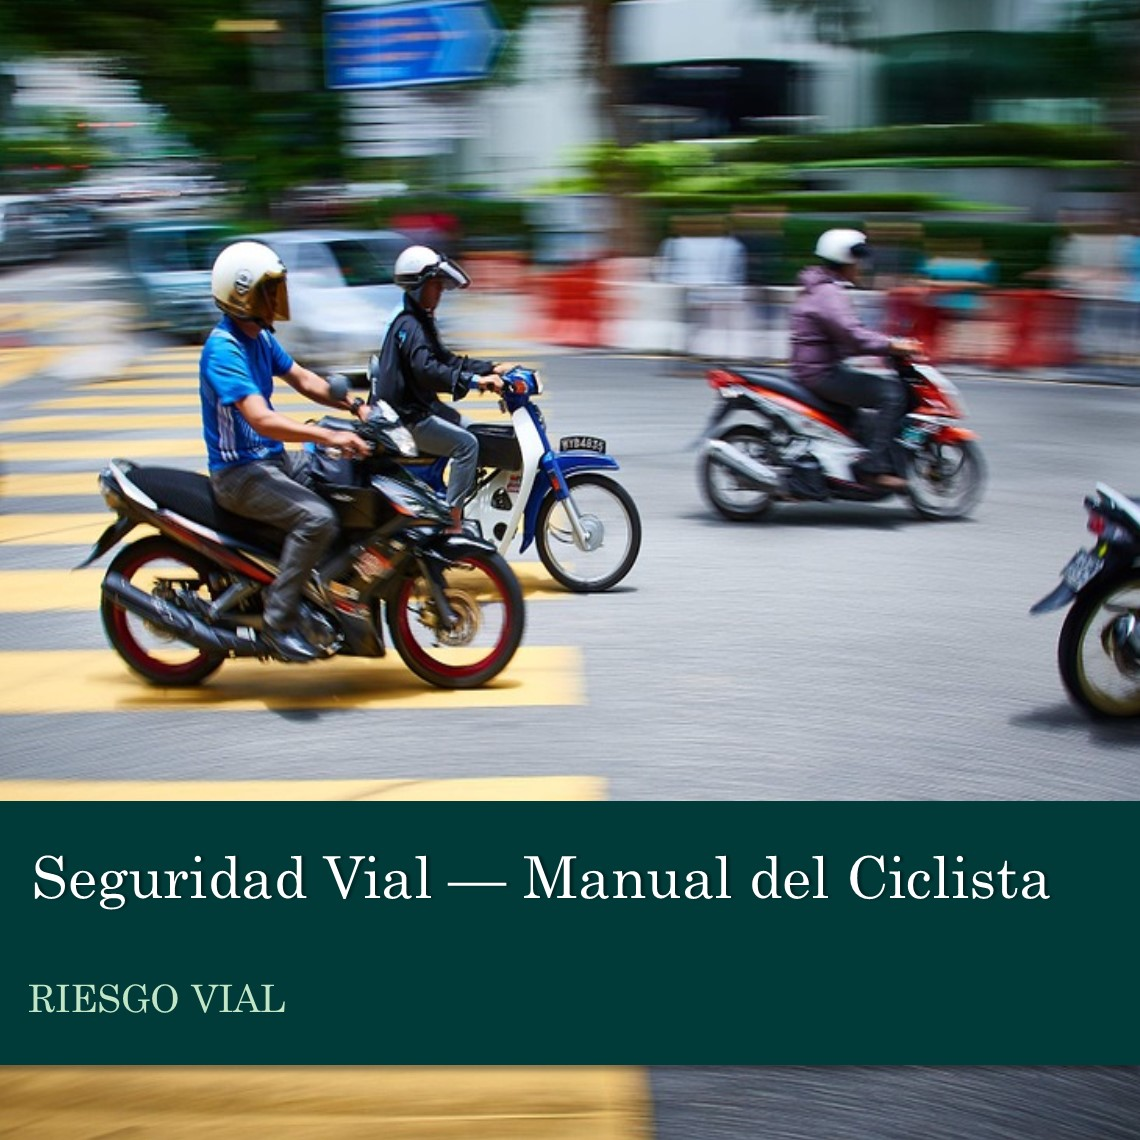 Seguridad Vial - Manual Motociclista